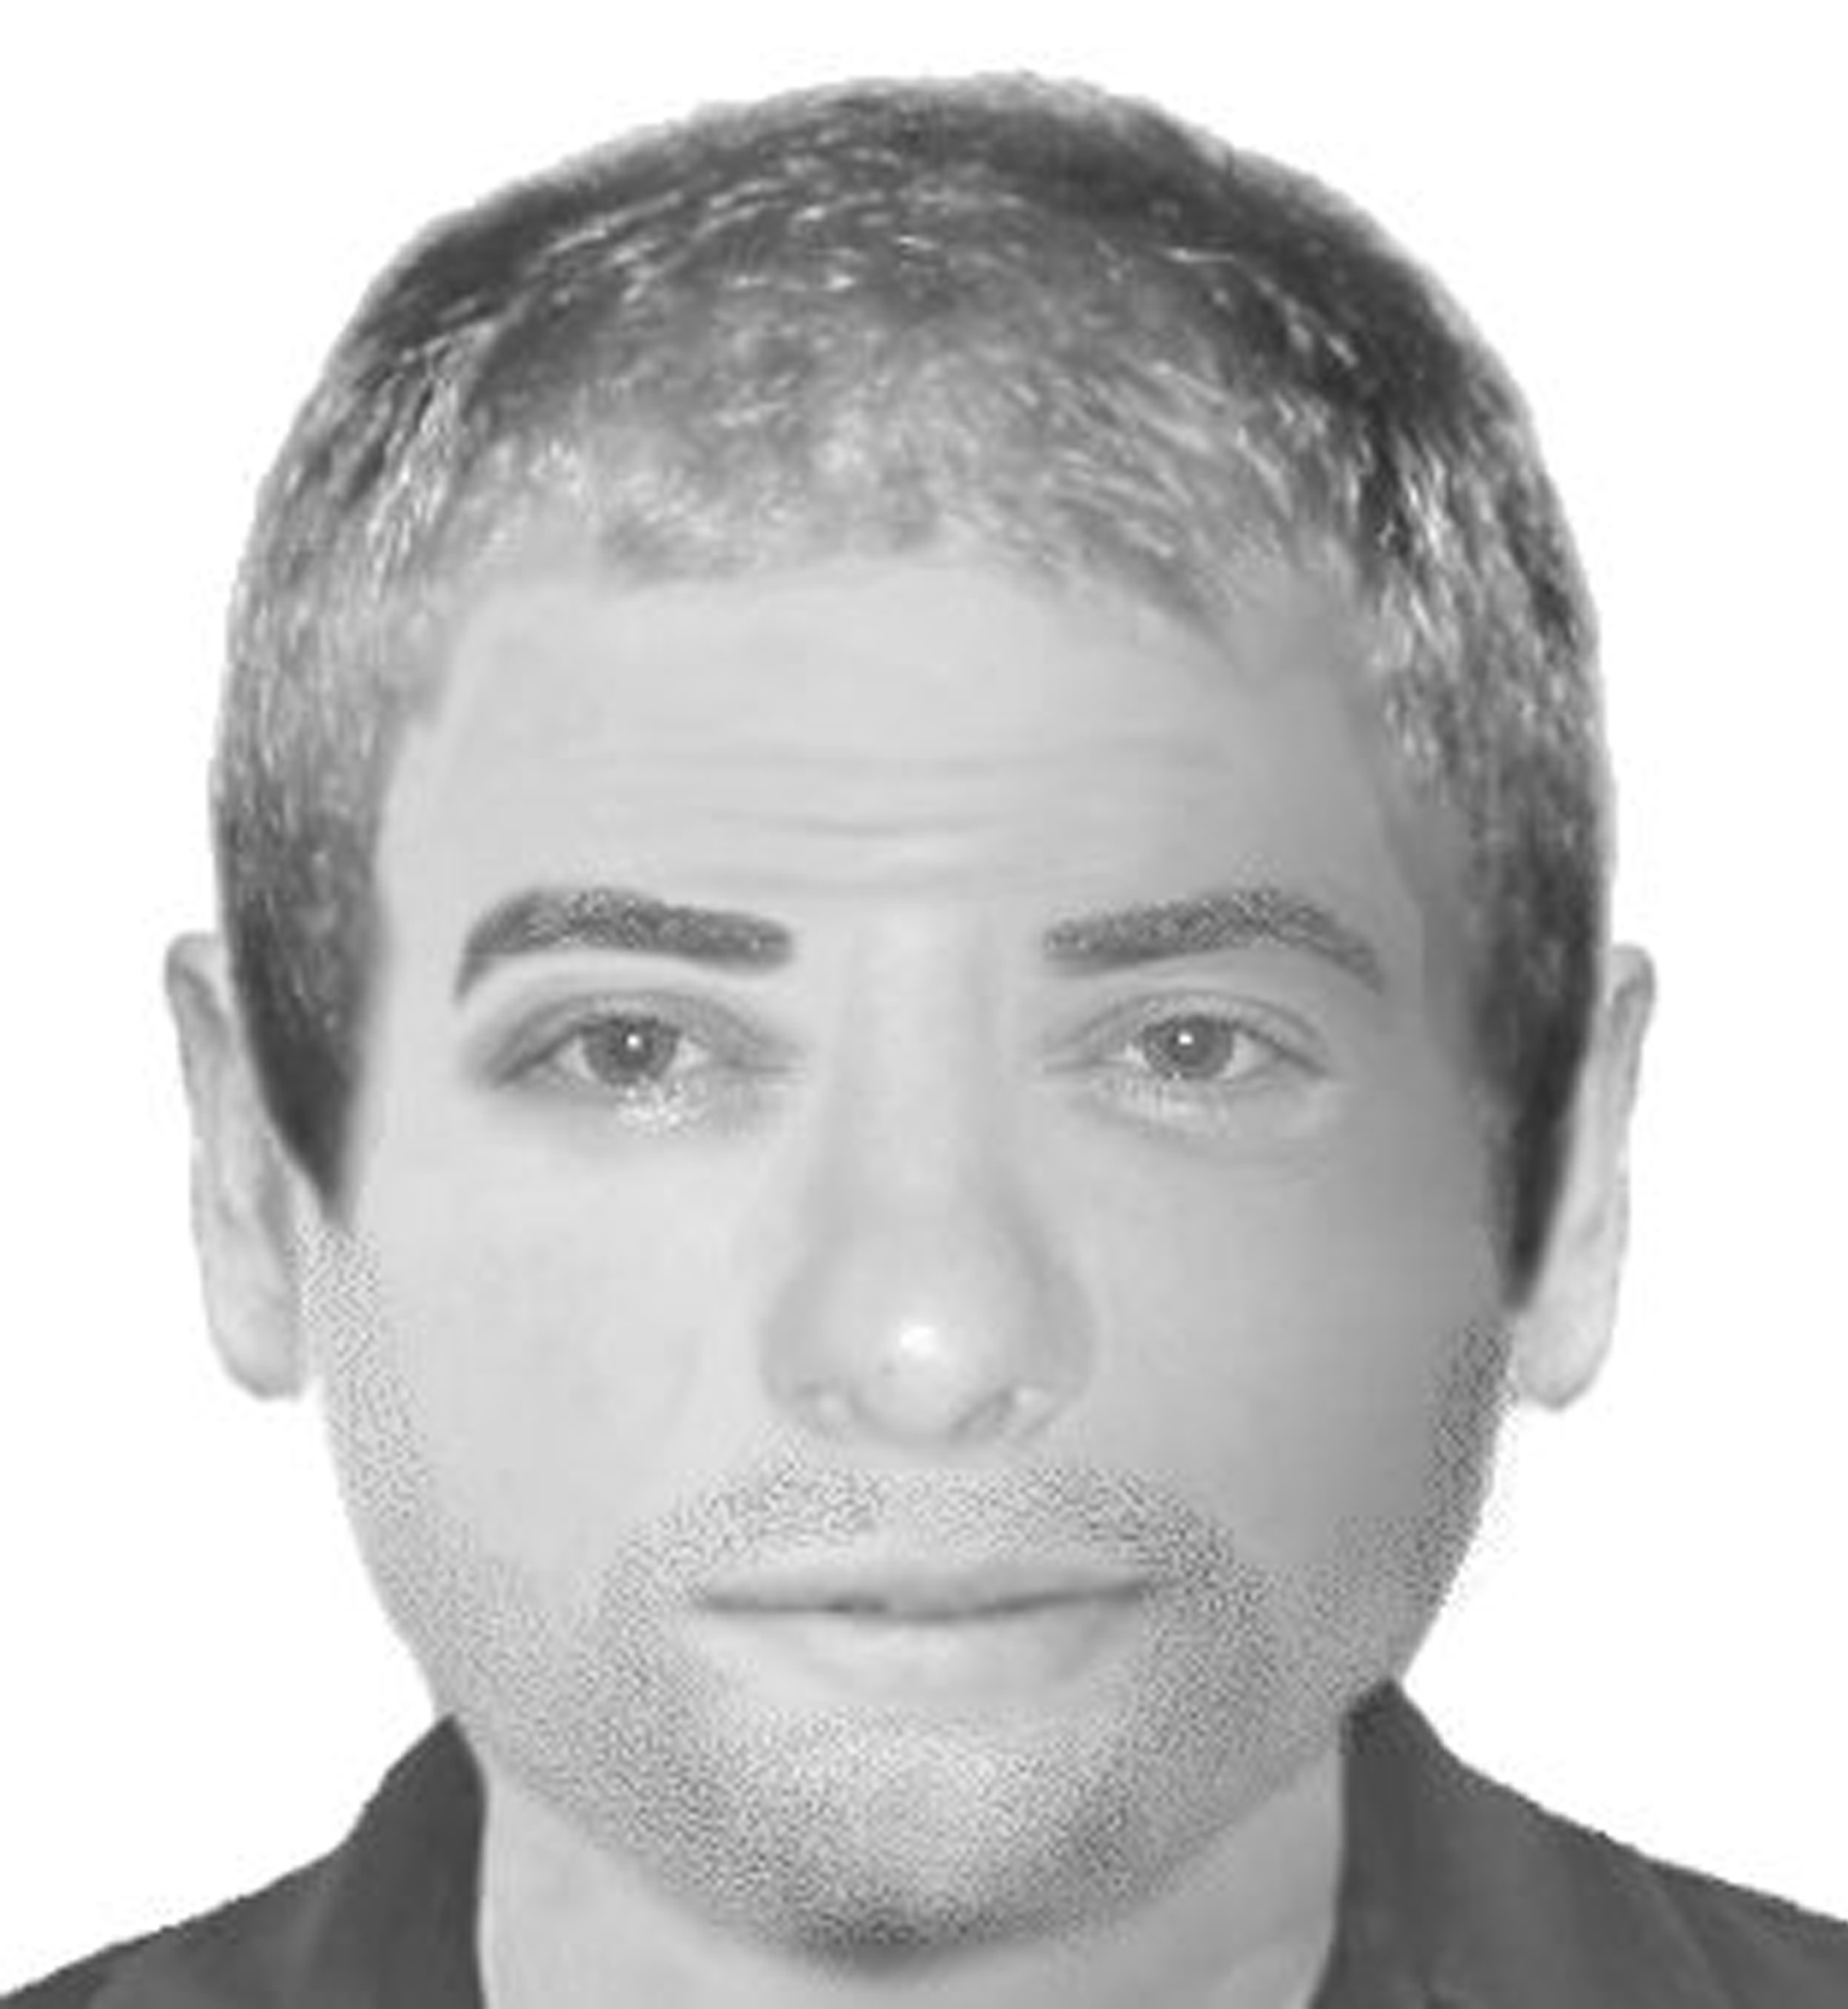 The e-fit of a man police are looking for